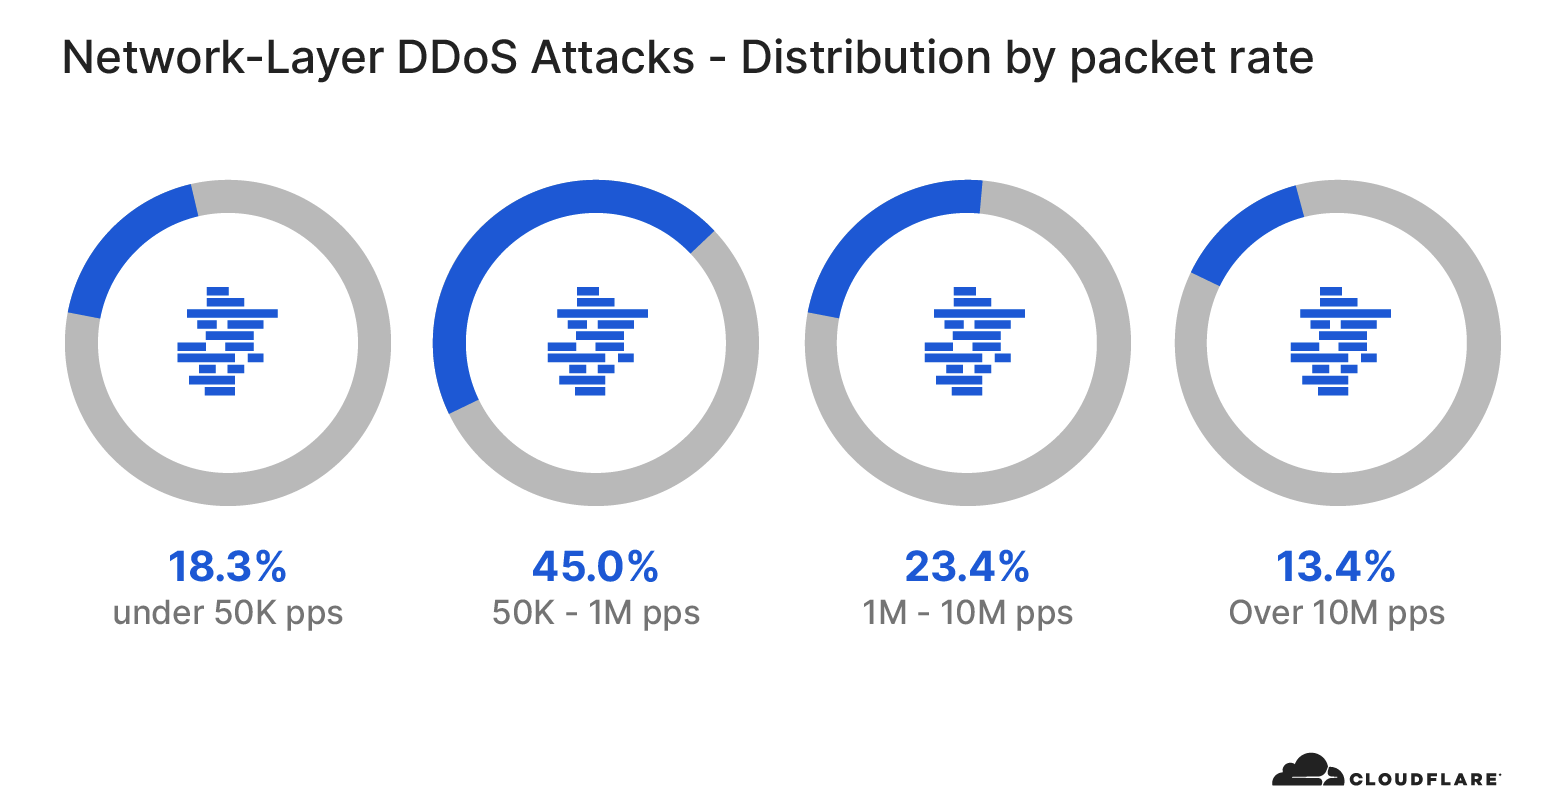 Network-layer DDoS attack trends for Q4 2020